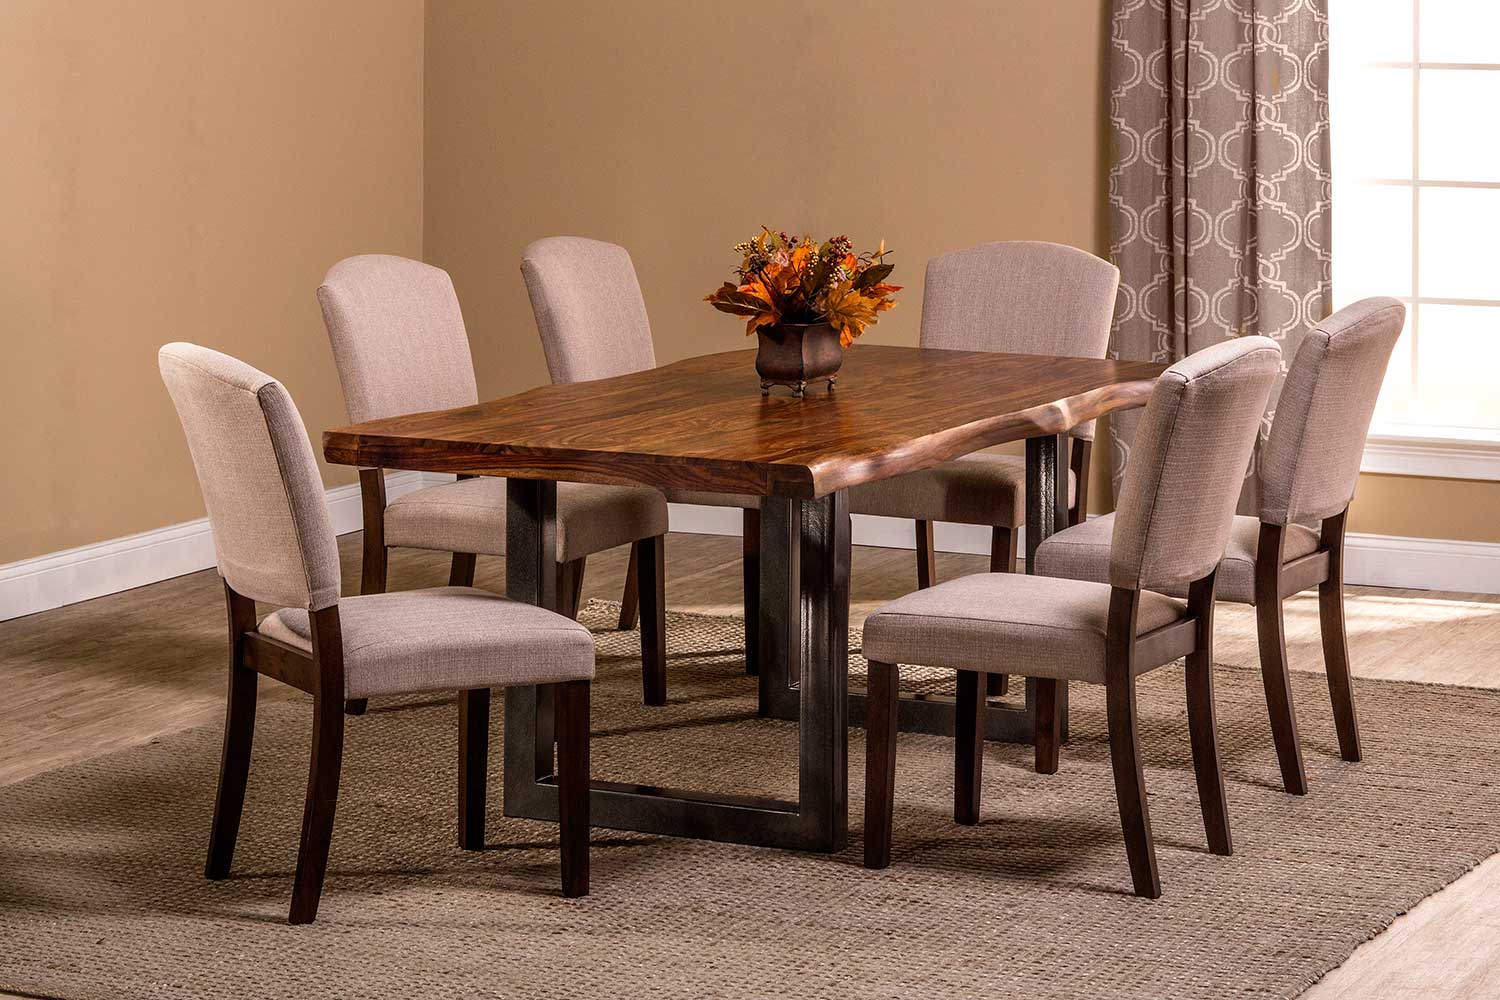 Hillsdale Emerson 7-Piece Rectangle Dining Set - Natural Sheesham/Gray Coat/Black